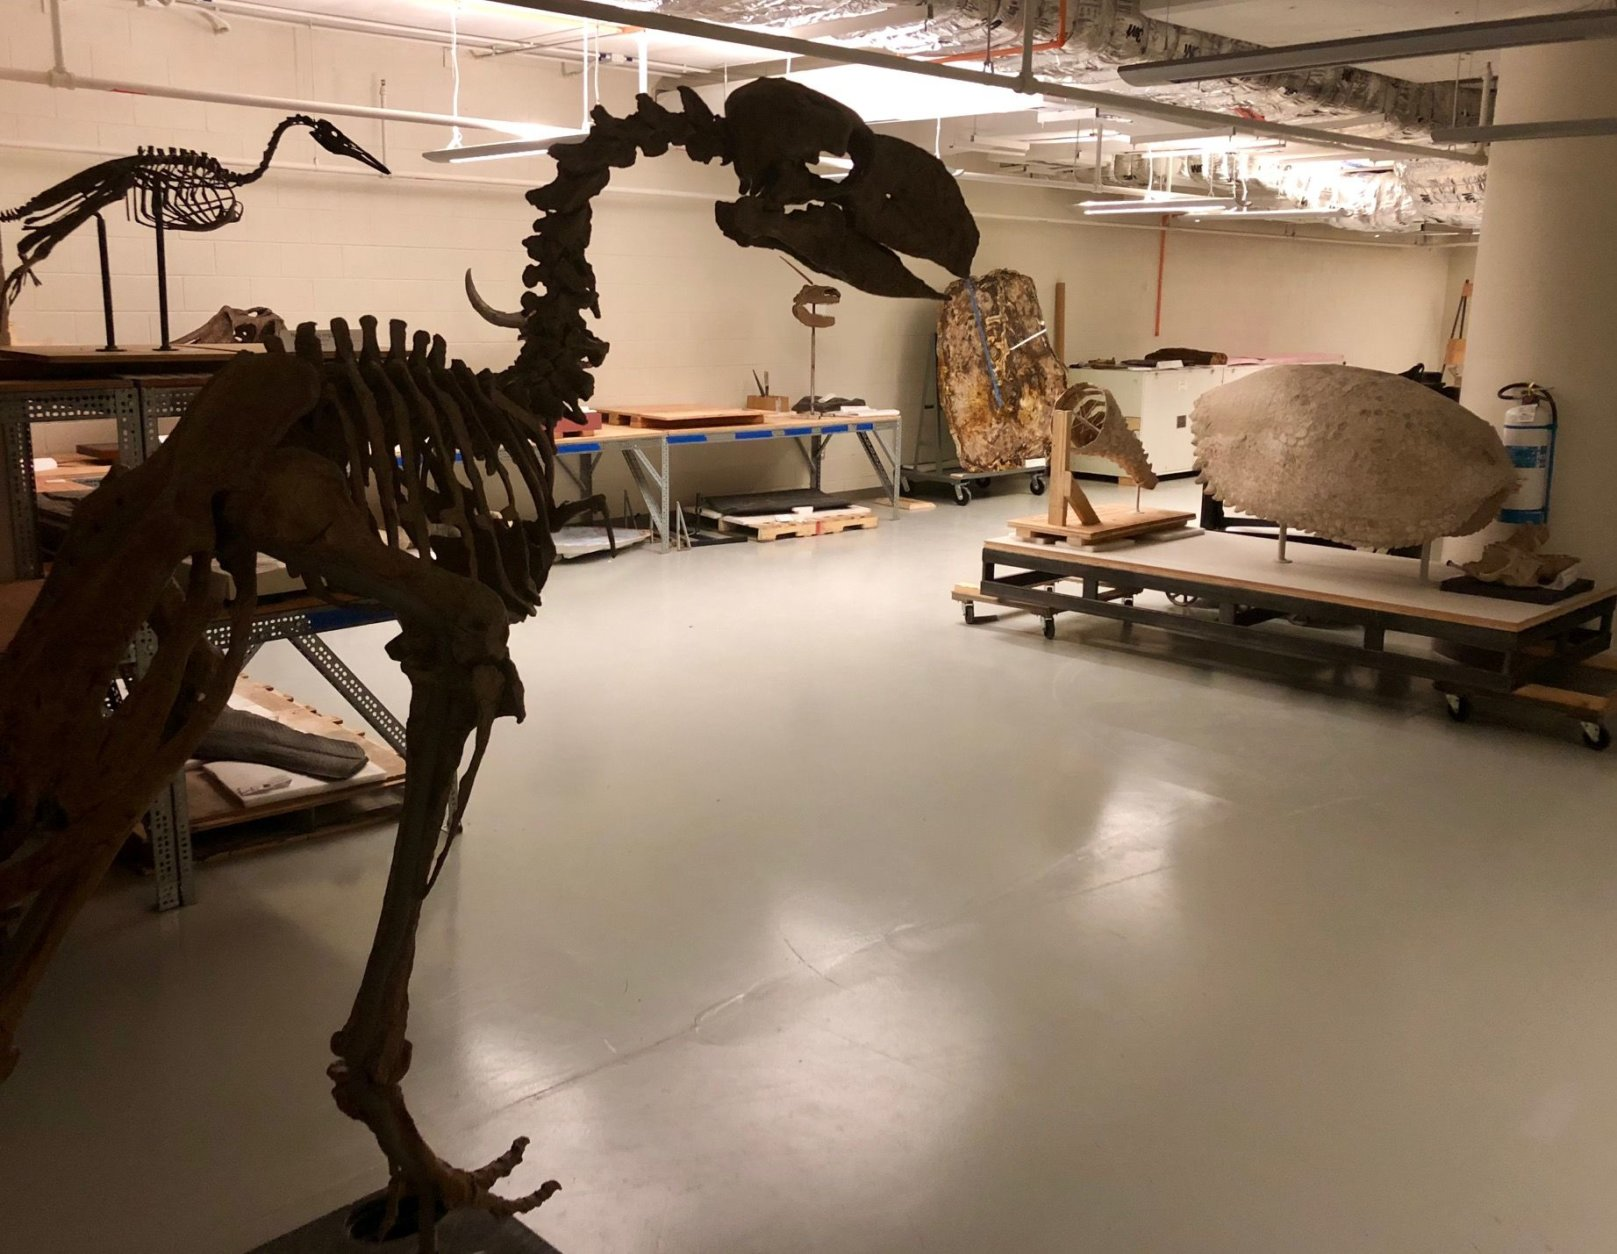 In a massive storage room inside the museum, partially constructed fossils, rare crystals and rows upon rows of large crates wait to make their way into what will be a 31,000-square-foot space. (WTOP/Megan Cloherty)